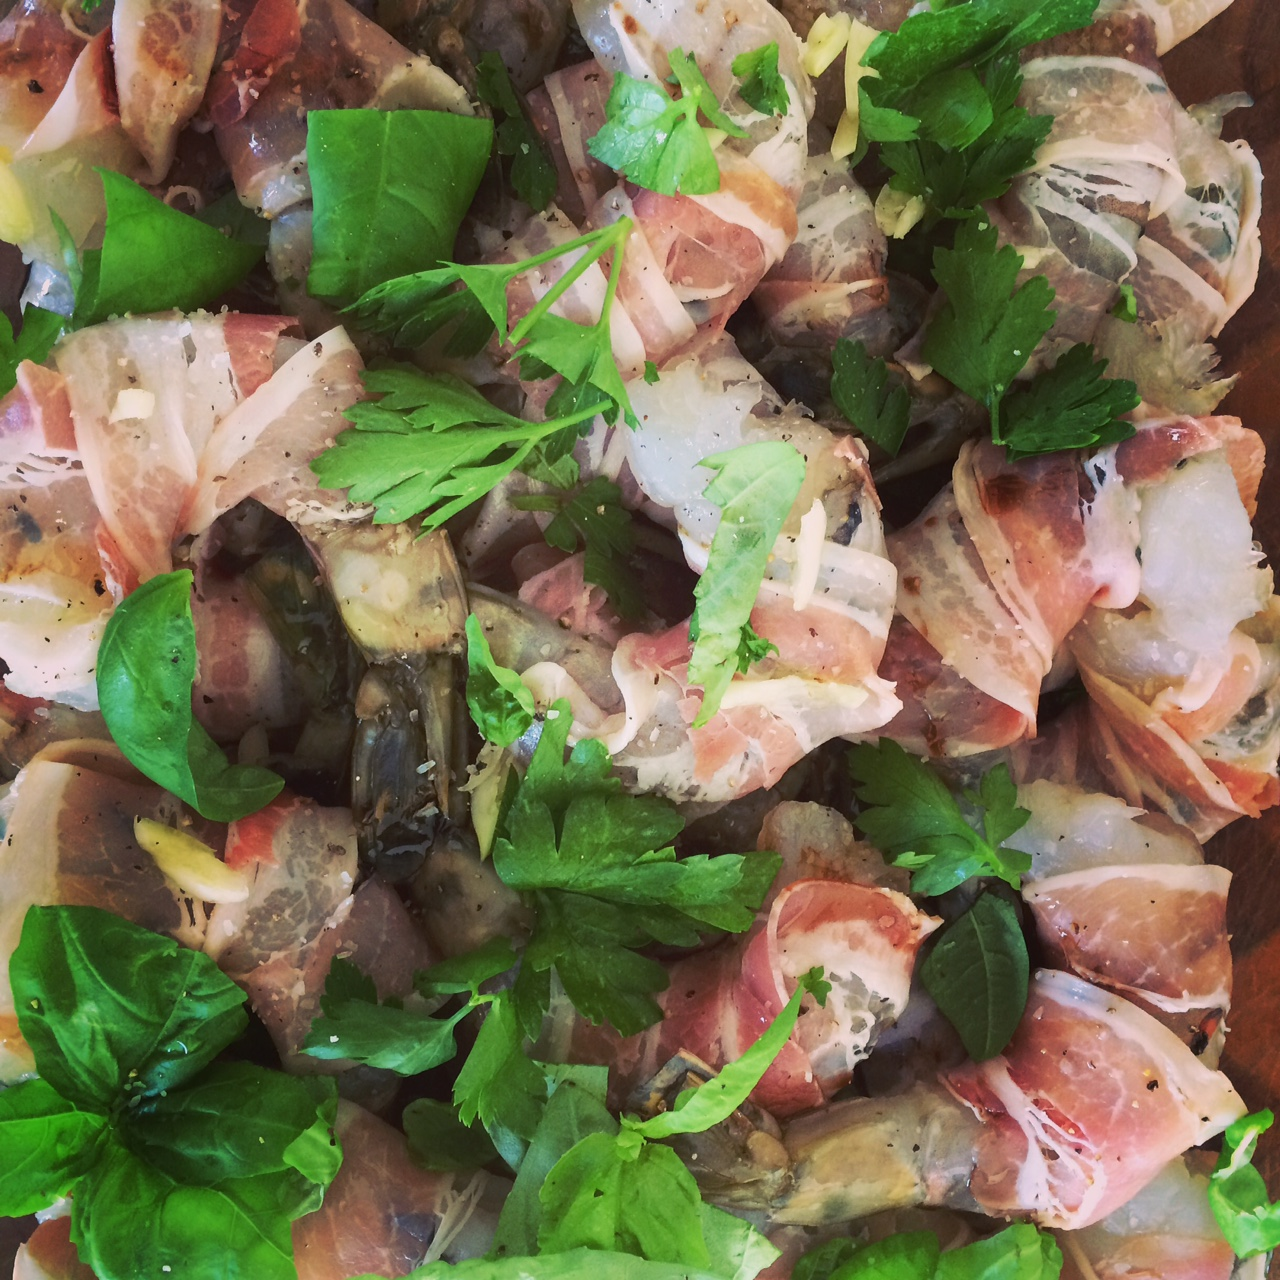 Marinating Pancetta Shrimp by Patricia for Casagiove